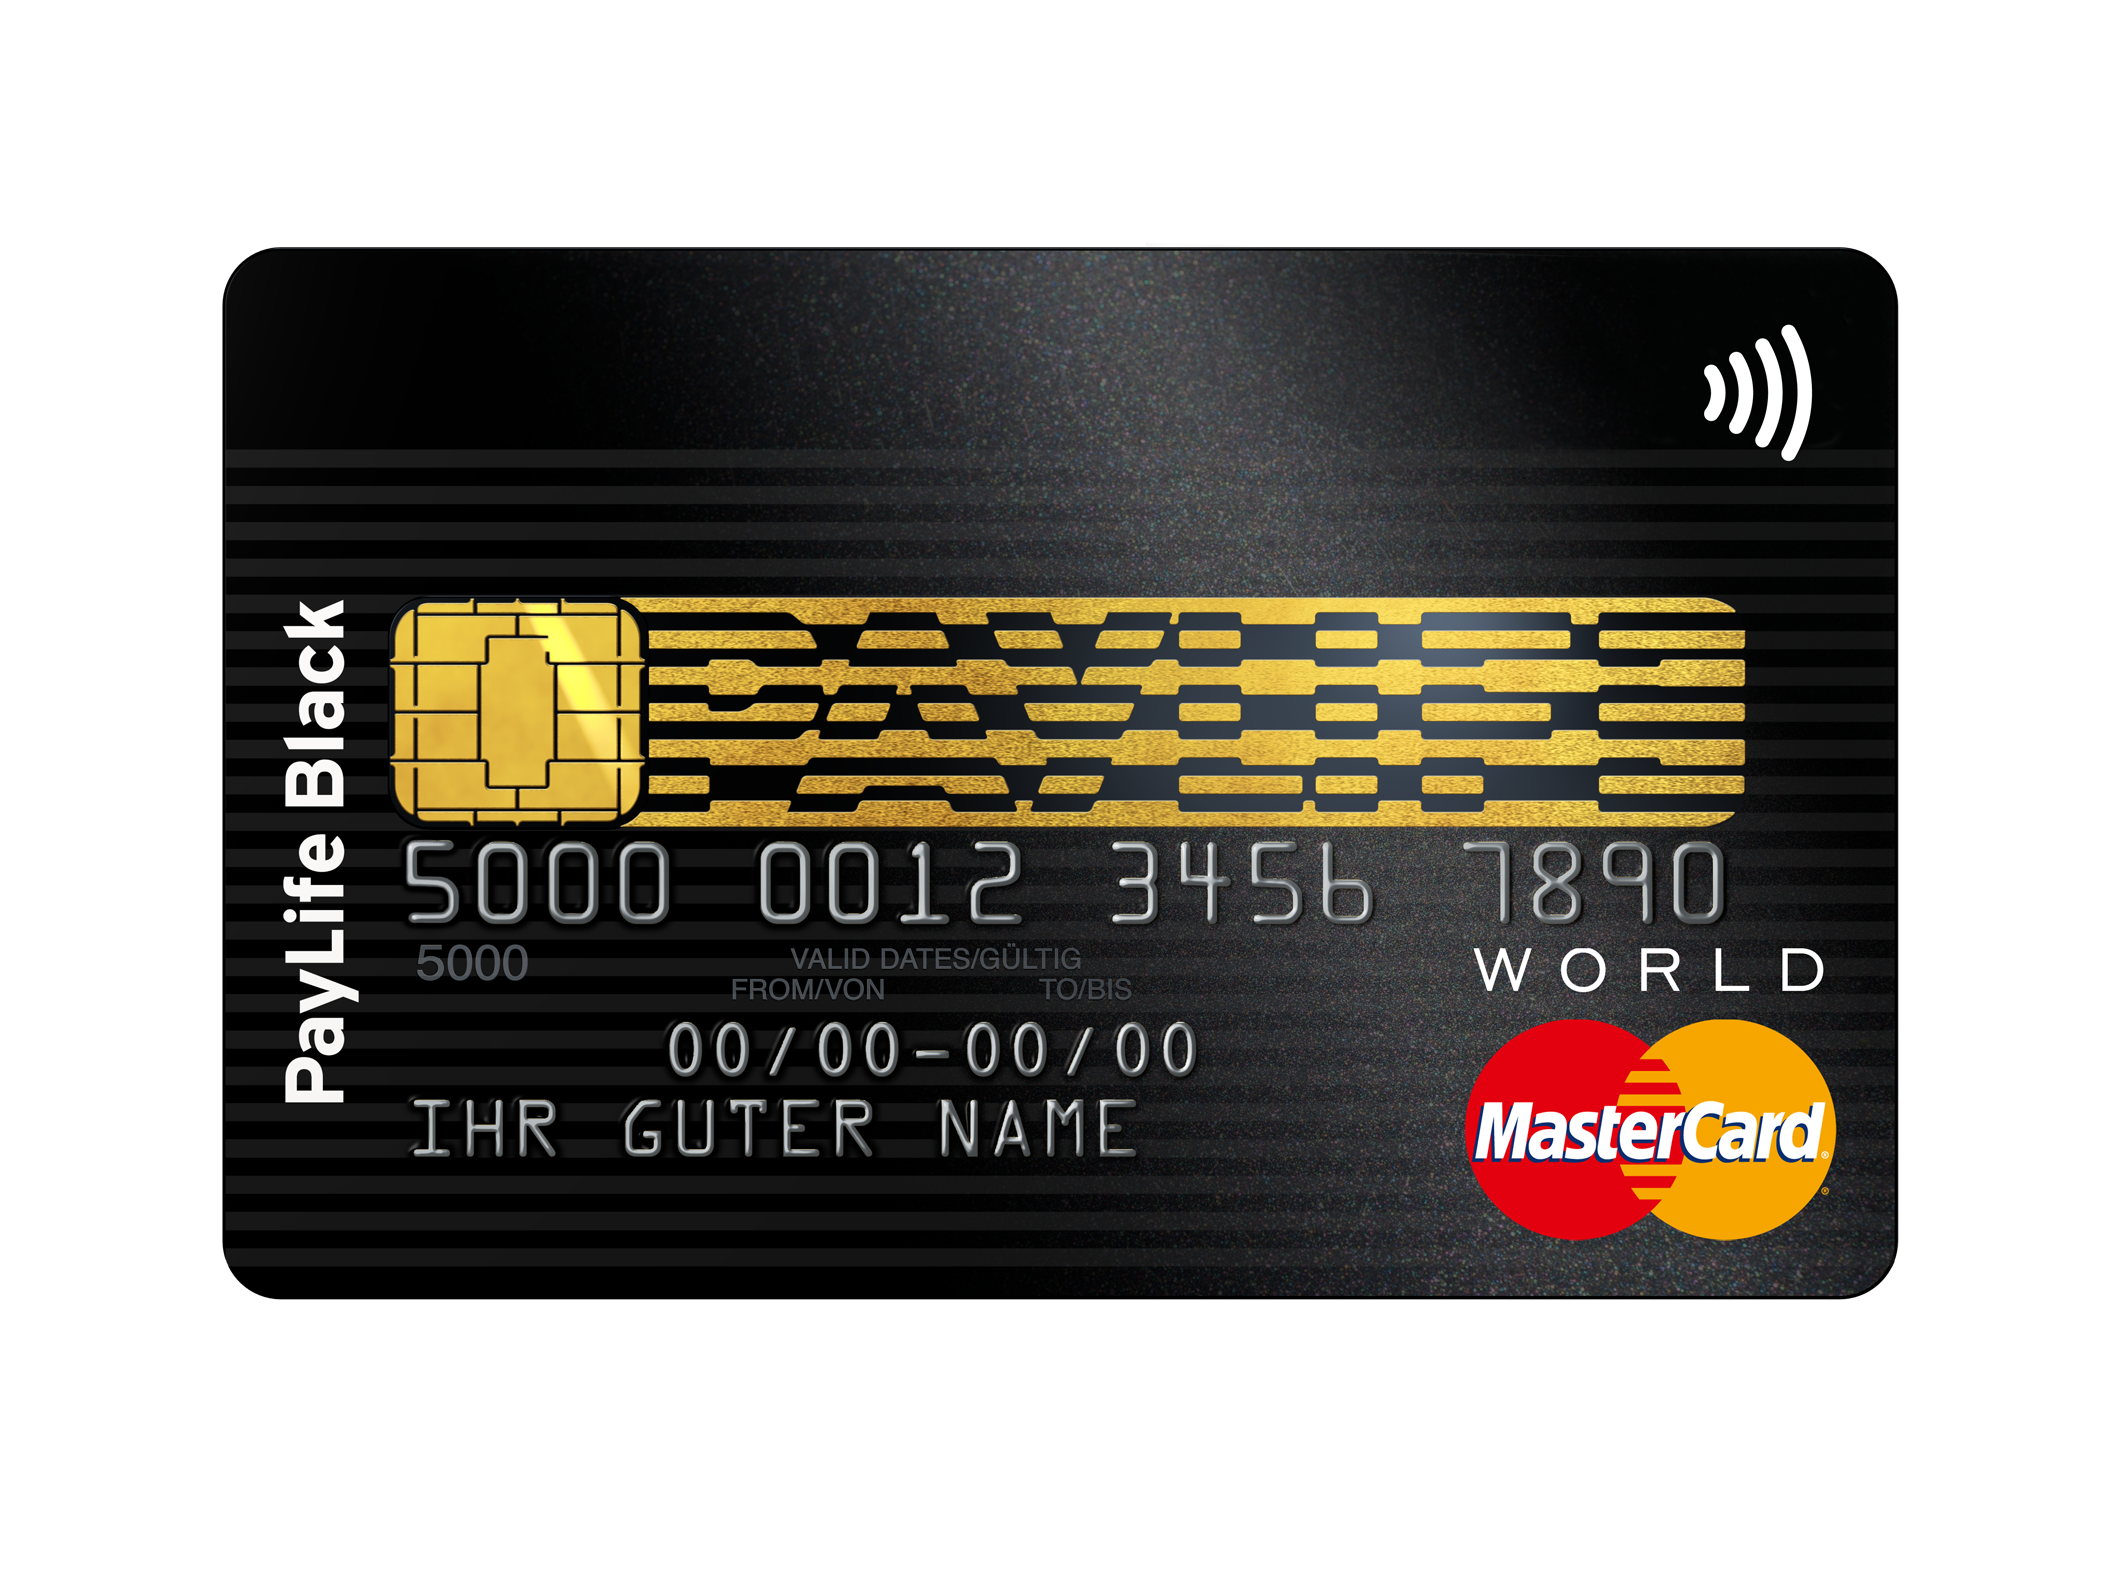 Deutsche Bank Mastercard Black